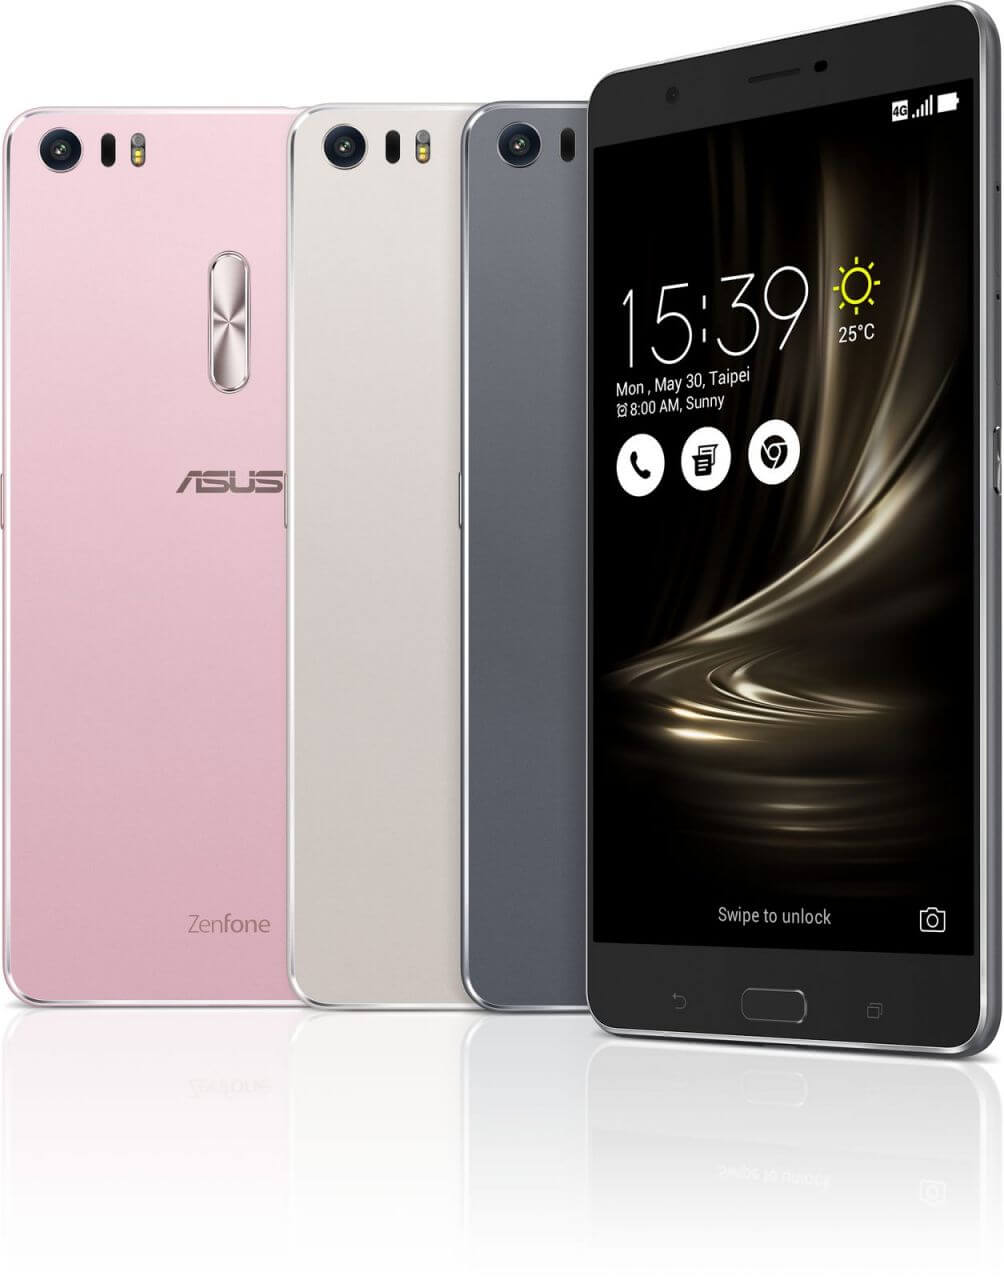 ASUS ZenFone 3 Ultra Android Smartphone